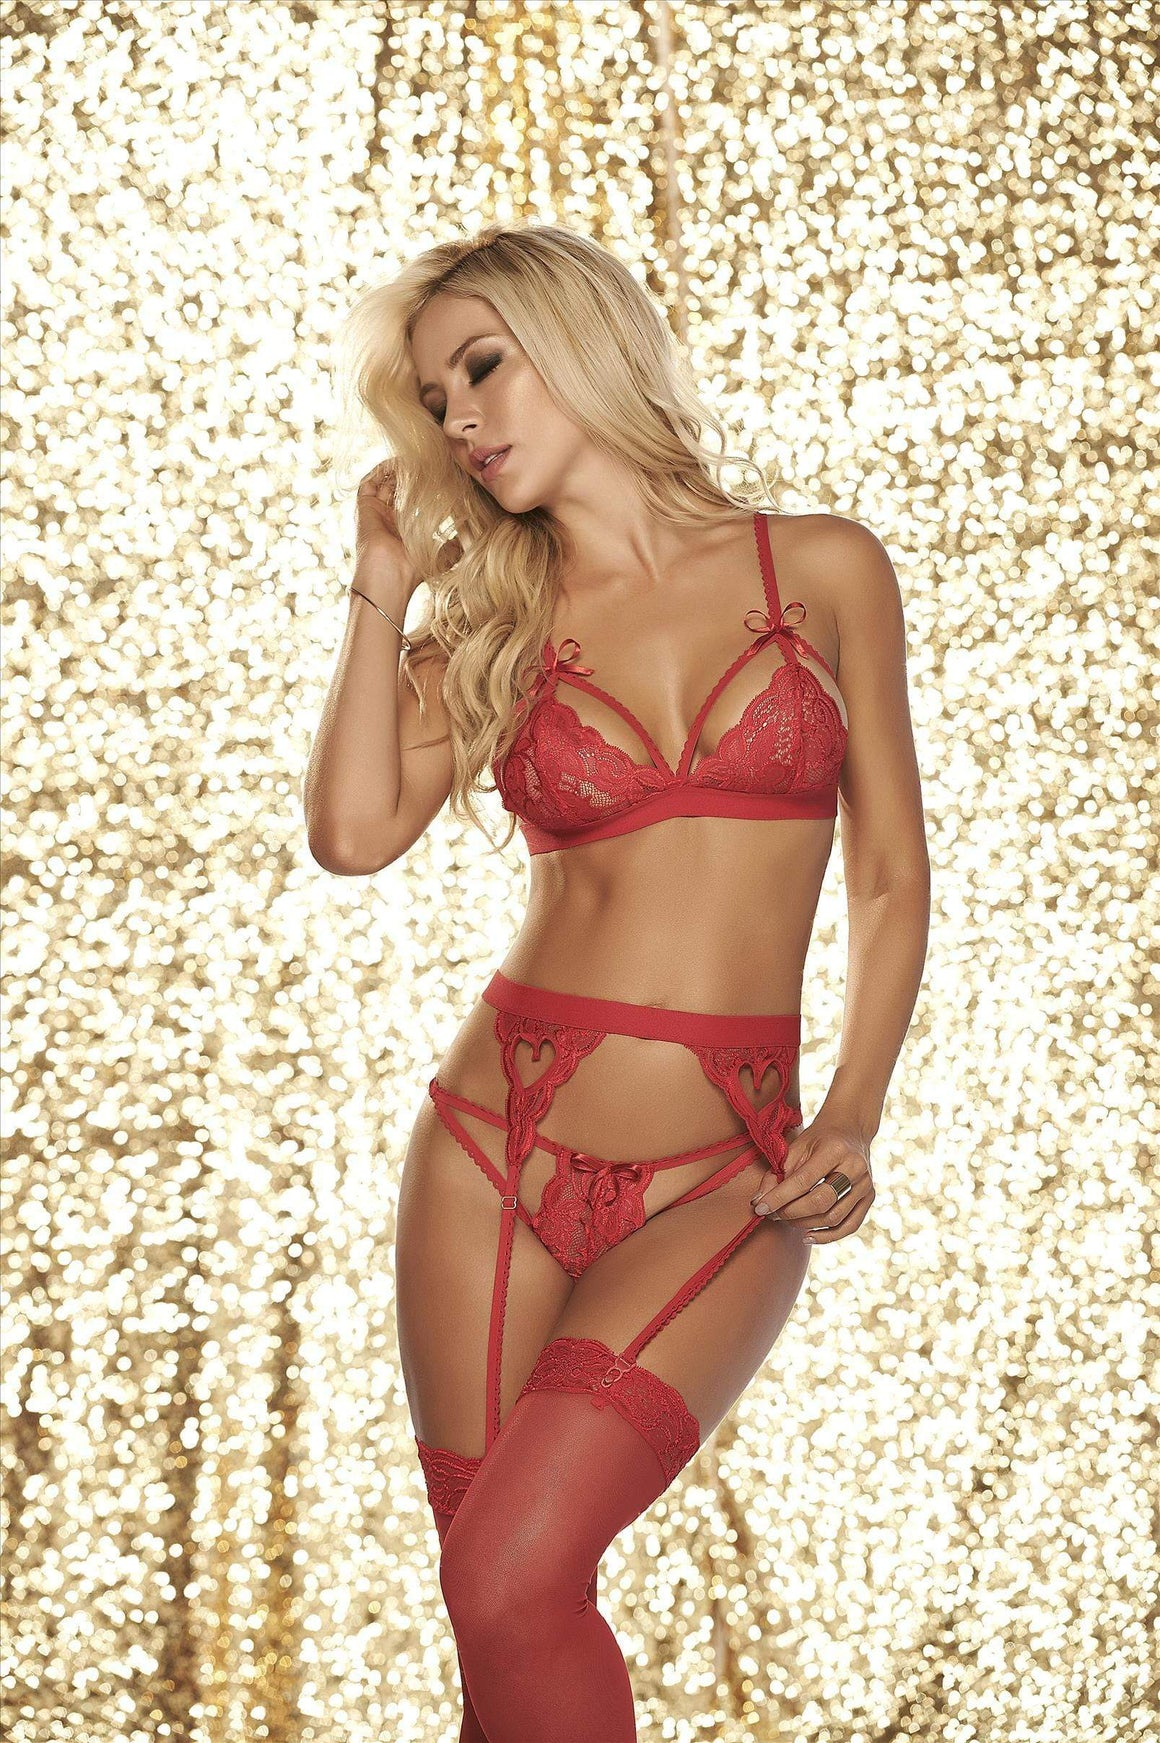 mapale Red / S/M Red Lace Bra, Thong, & Garter 3 Pc. Set (Many colors available) SHC-8221-RED-S/M-MA Red Lingerie Lace Set Bra Thong & Garter MAPALE 8221 | SHOP NOW | Apparel & Accessories > Clothing > Underwear & Socks > Lingerie